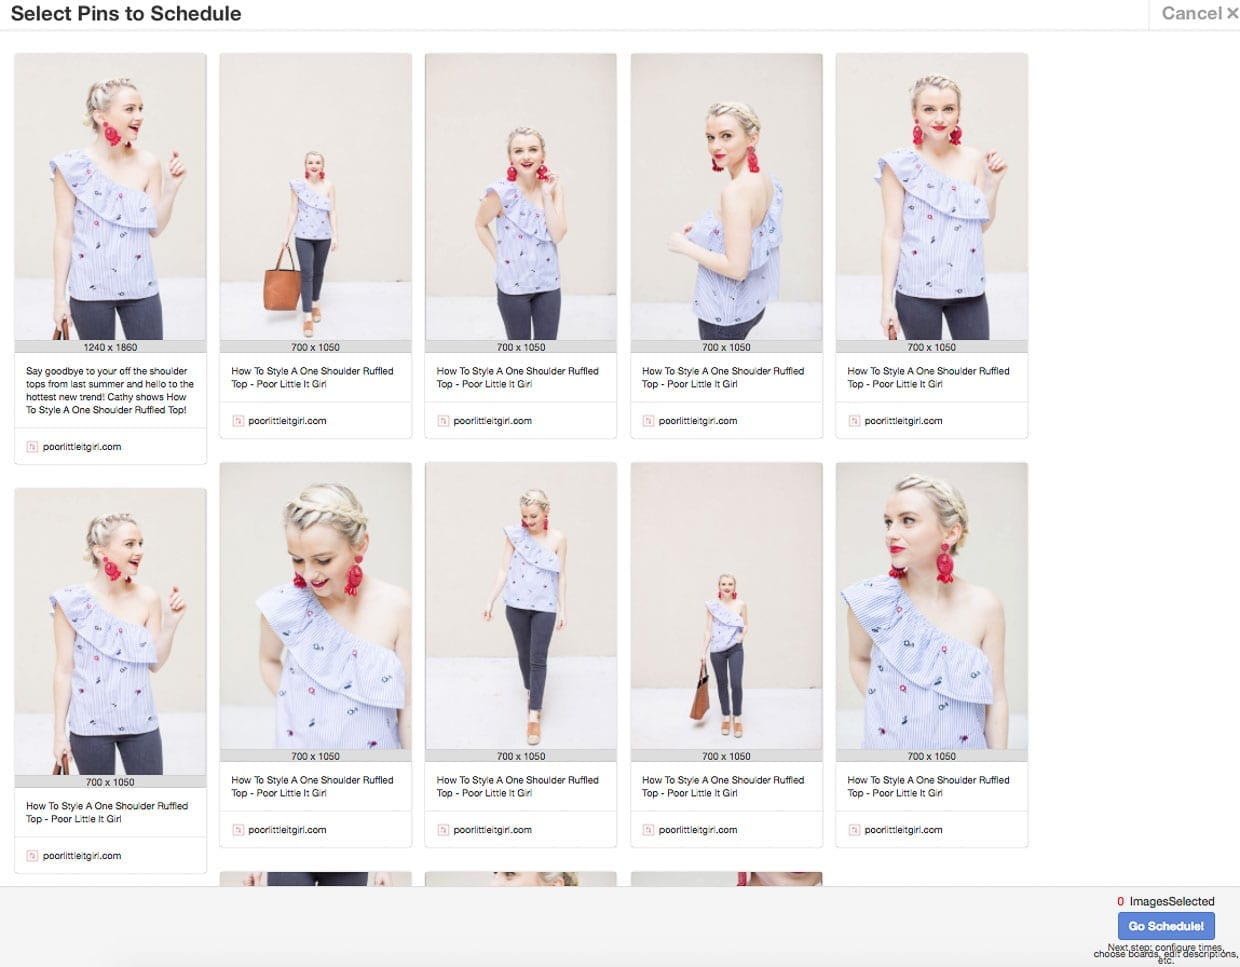 How I Grew 3000 Pinterest Followers In Less Than 2 Months - Poor Little It Girl